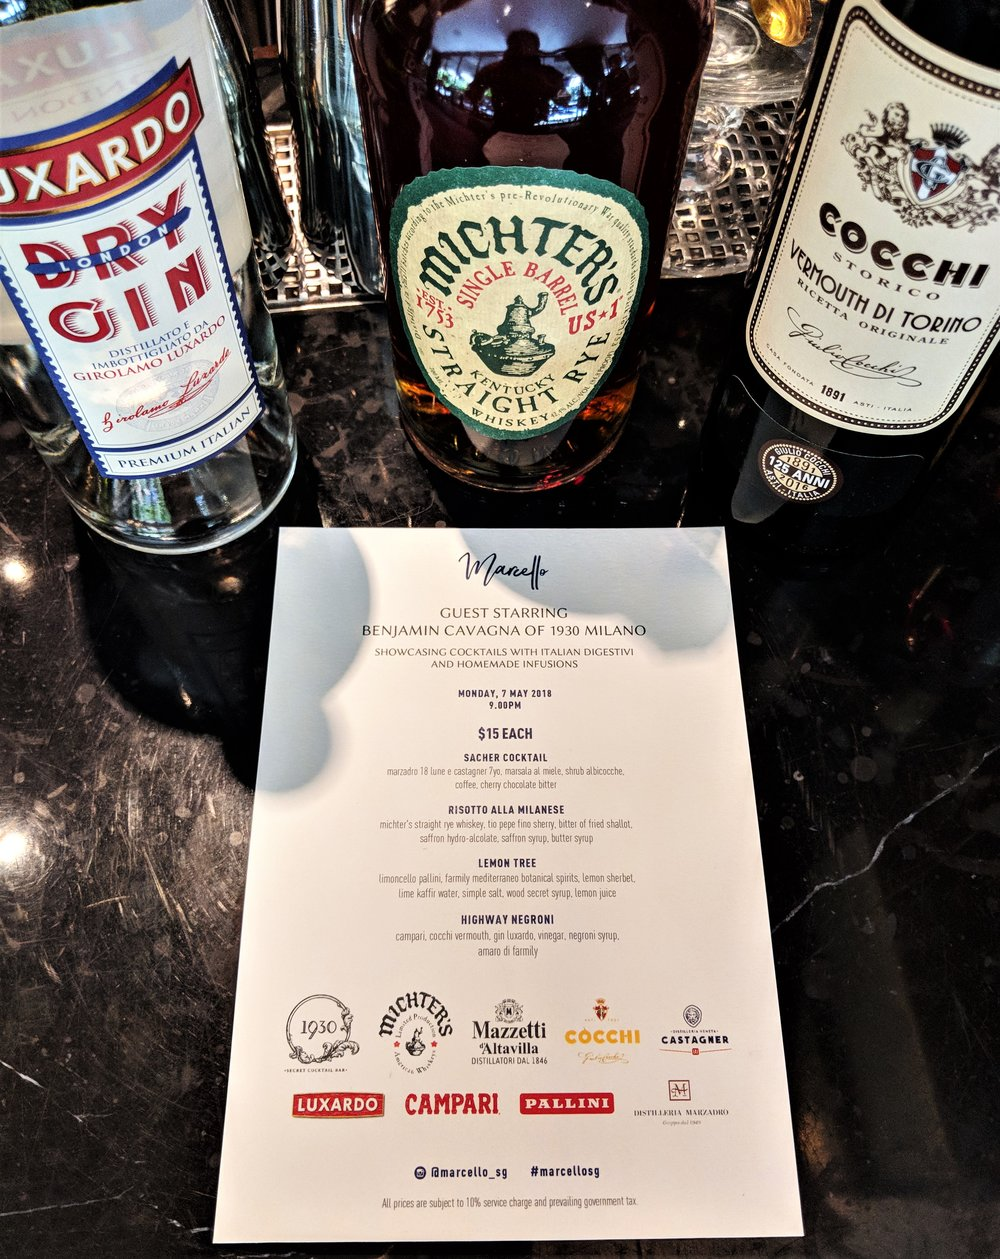 The menu at Marcello featuring Luxardo, Michter's, Cocchi and many more Italian brands